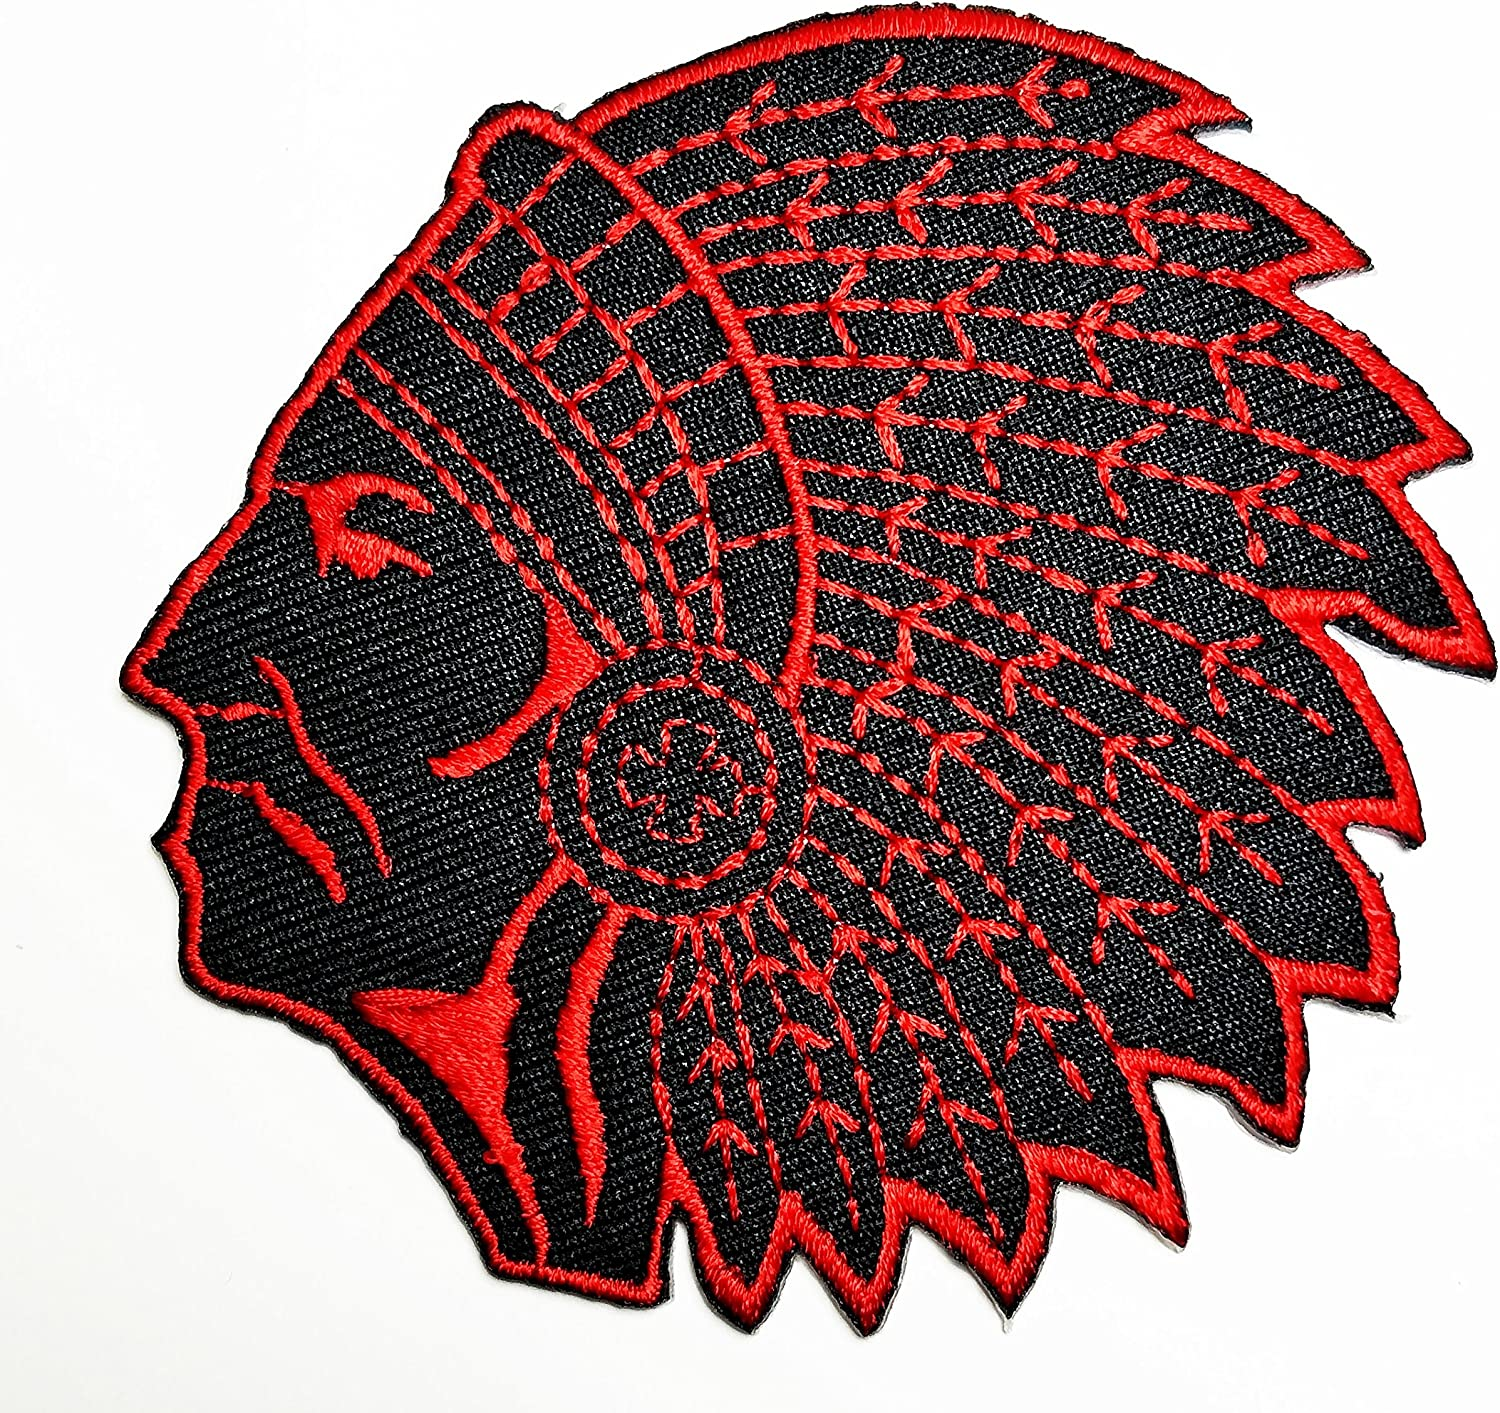 Feather Embroidered Patch Clothing Iron on DIY Patches for Kids Bag Hats Jacket